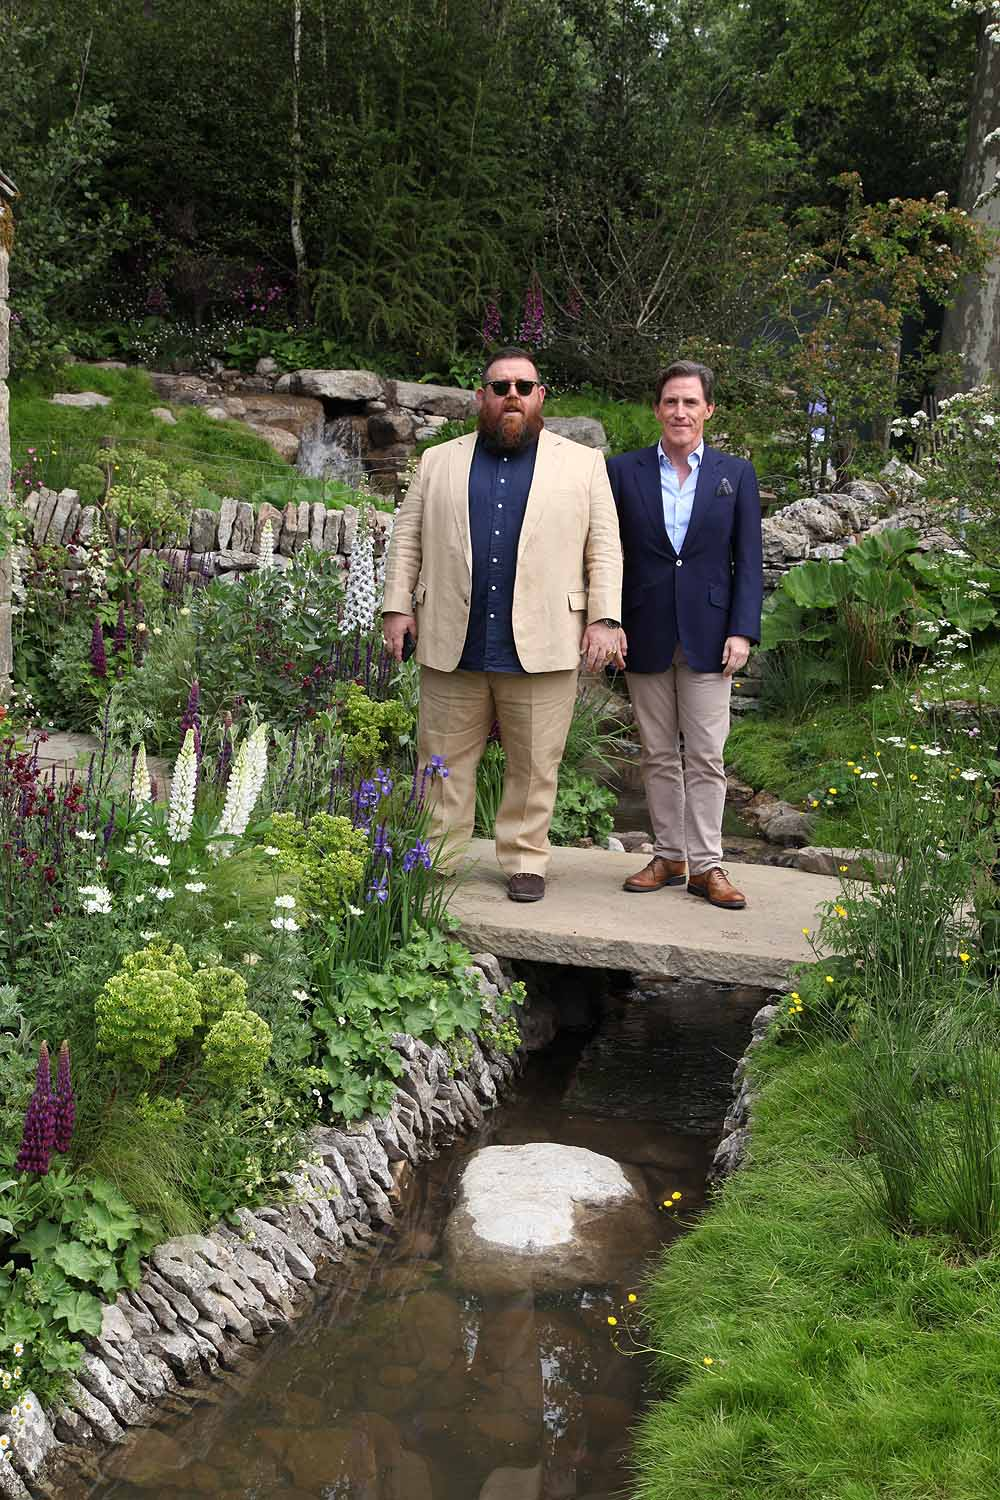 Nick Frost and Rob Brydon on the Welcome to Yorkshire garden at Chelsea Flower Show 2018, designed by Mark Gregory for Landformconsultants.co.uk